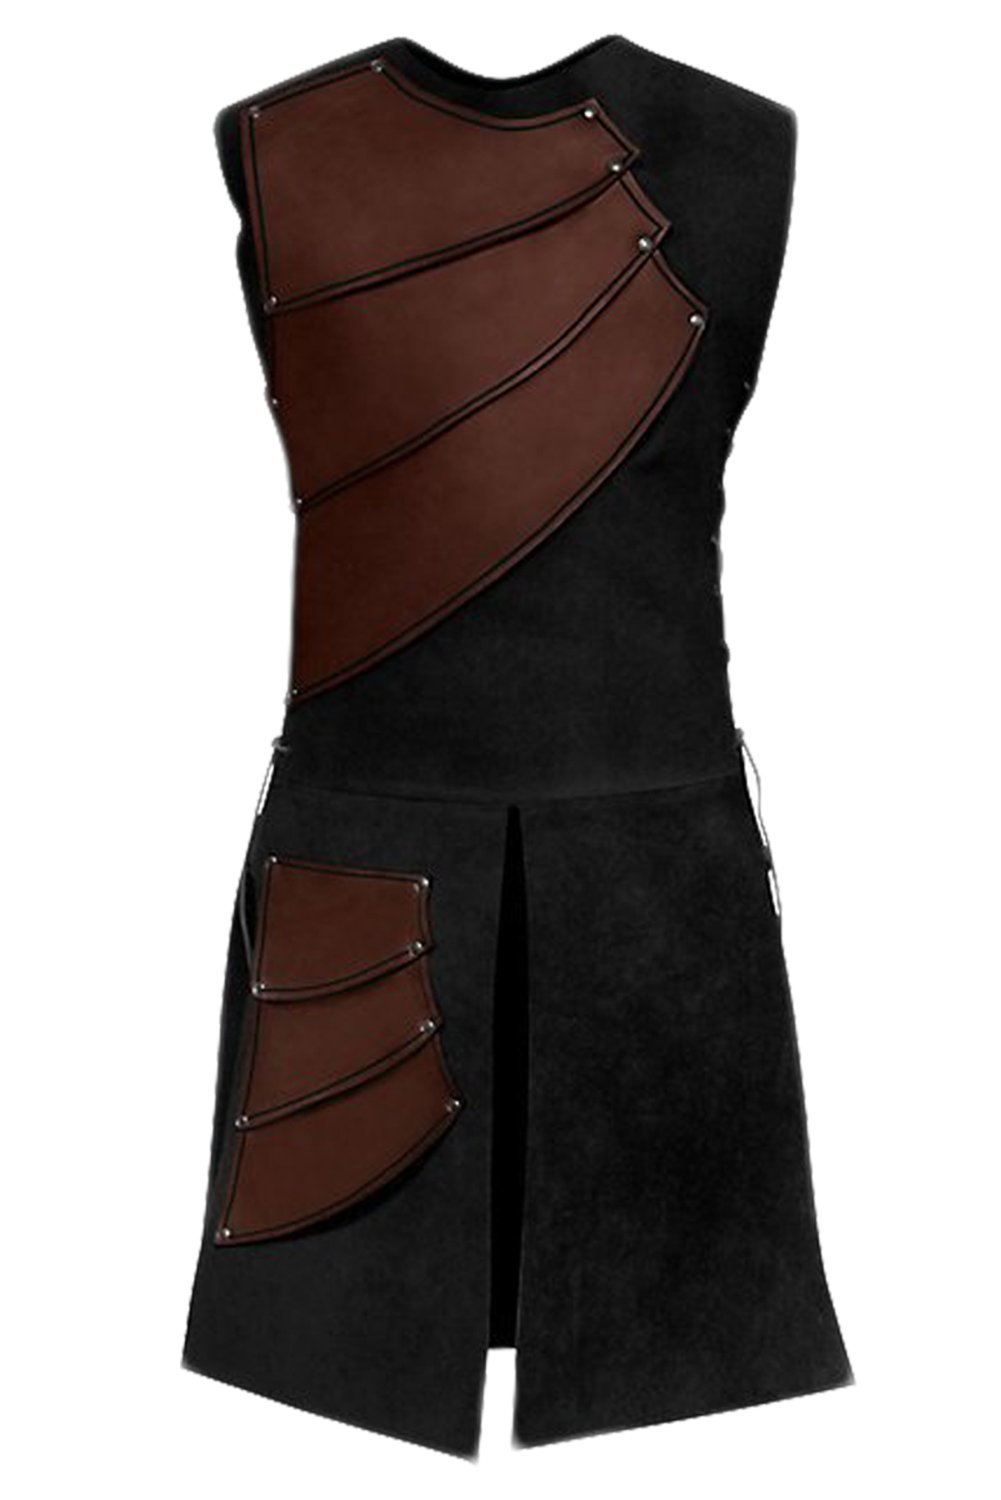 Men's Medieval Sleeveless Warrior Costume King Renaissance Victorian Waistcoats Vests by Sidnor (Image #1)